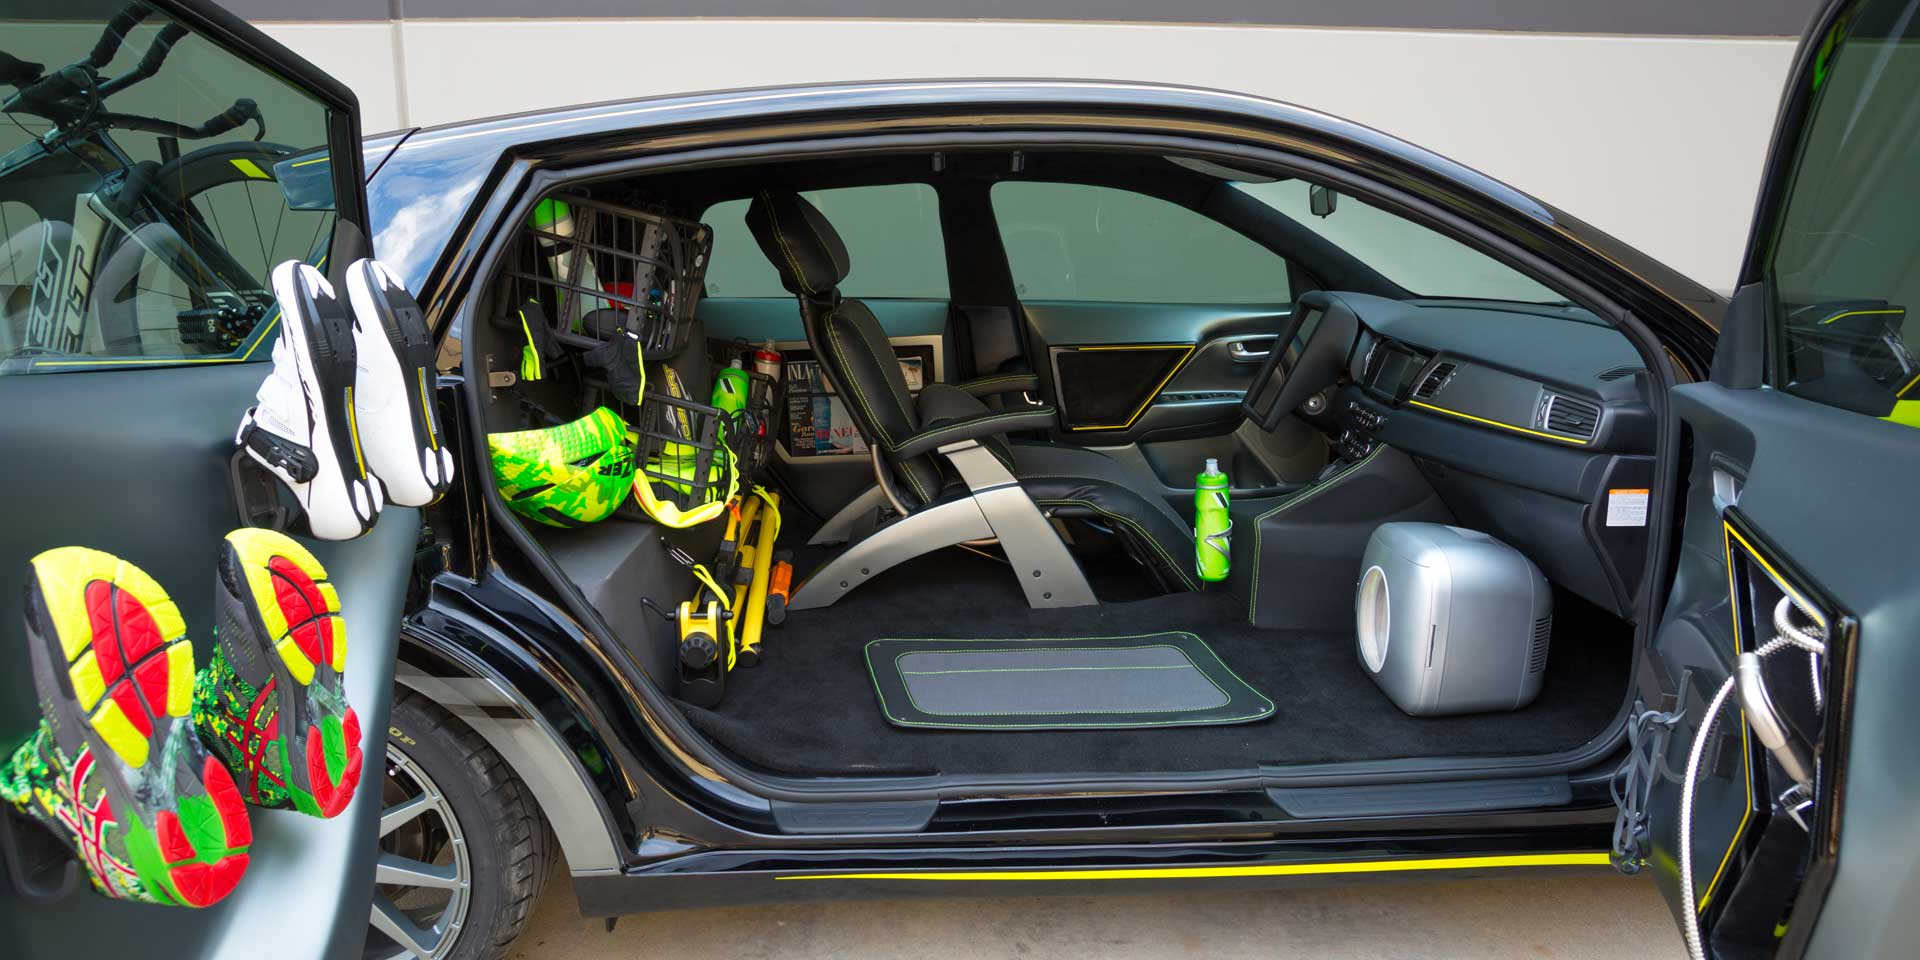 Kia Niro Triathlon The Is A Hybrid That S Modified To Be Active Athlete Best Friend This Self Driving Car Has Cargo E